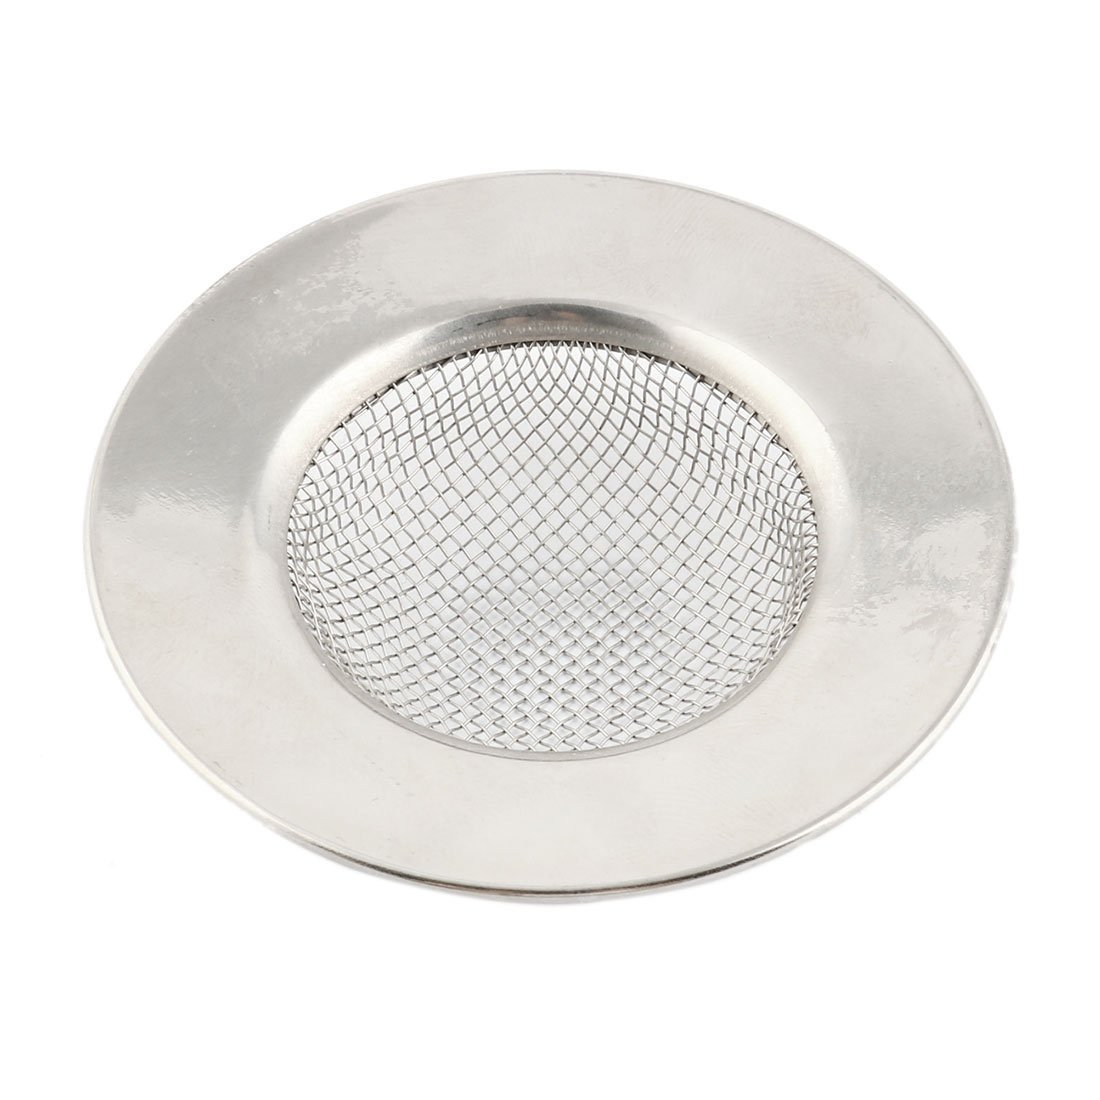 sourcingmap® Stainless Steel Kitchen Bathroom Basin Drain Sink Mesh Strainer Filter 6.4cm Outer Dia Silver Tone SYNCFHK016521